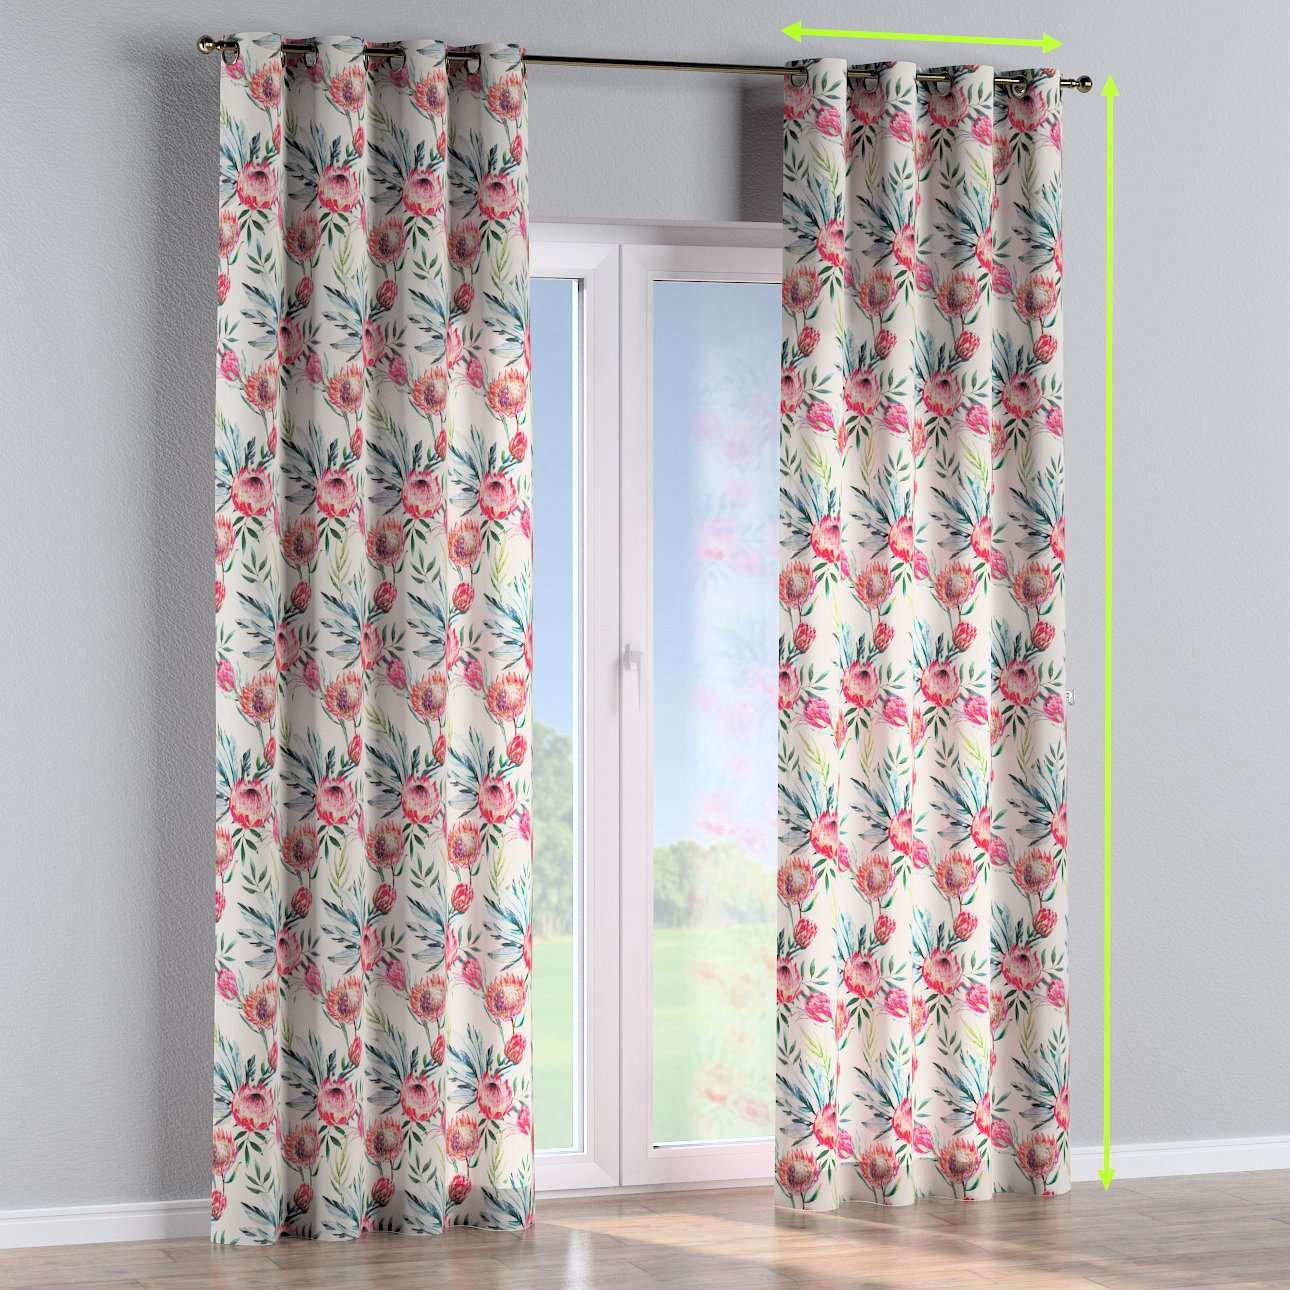 Eyelet curtains in collection New Art, fabric: 141-59